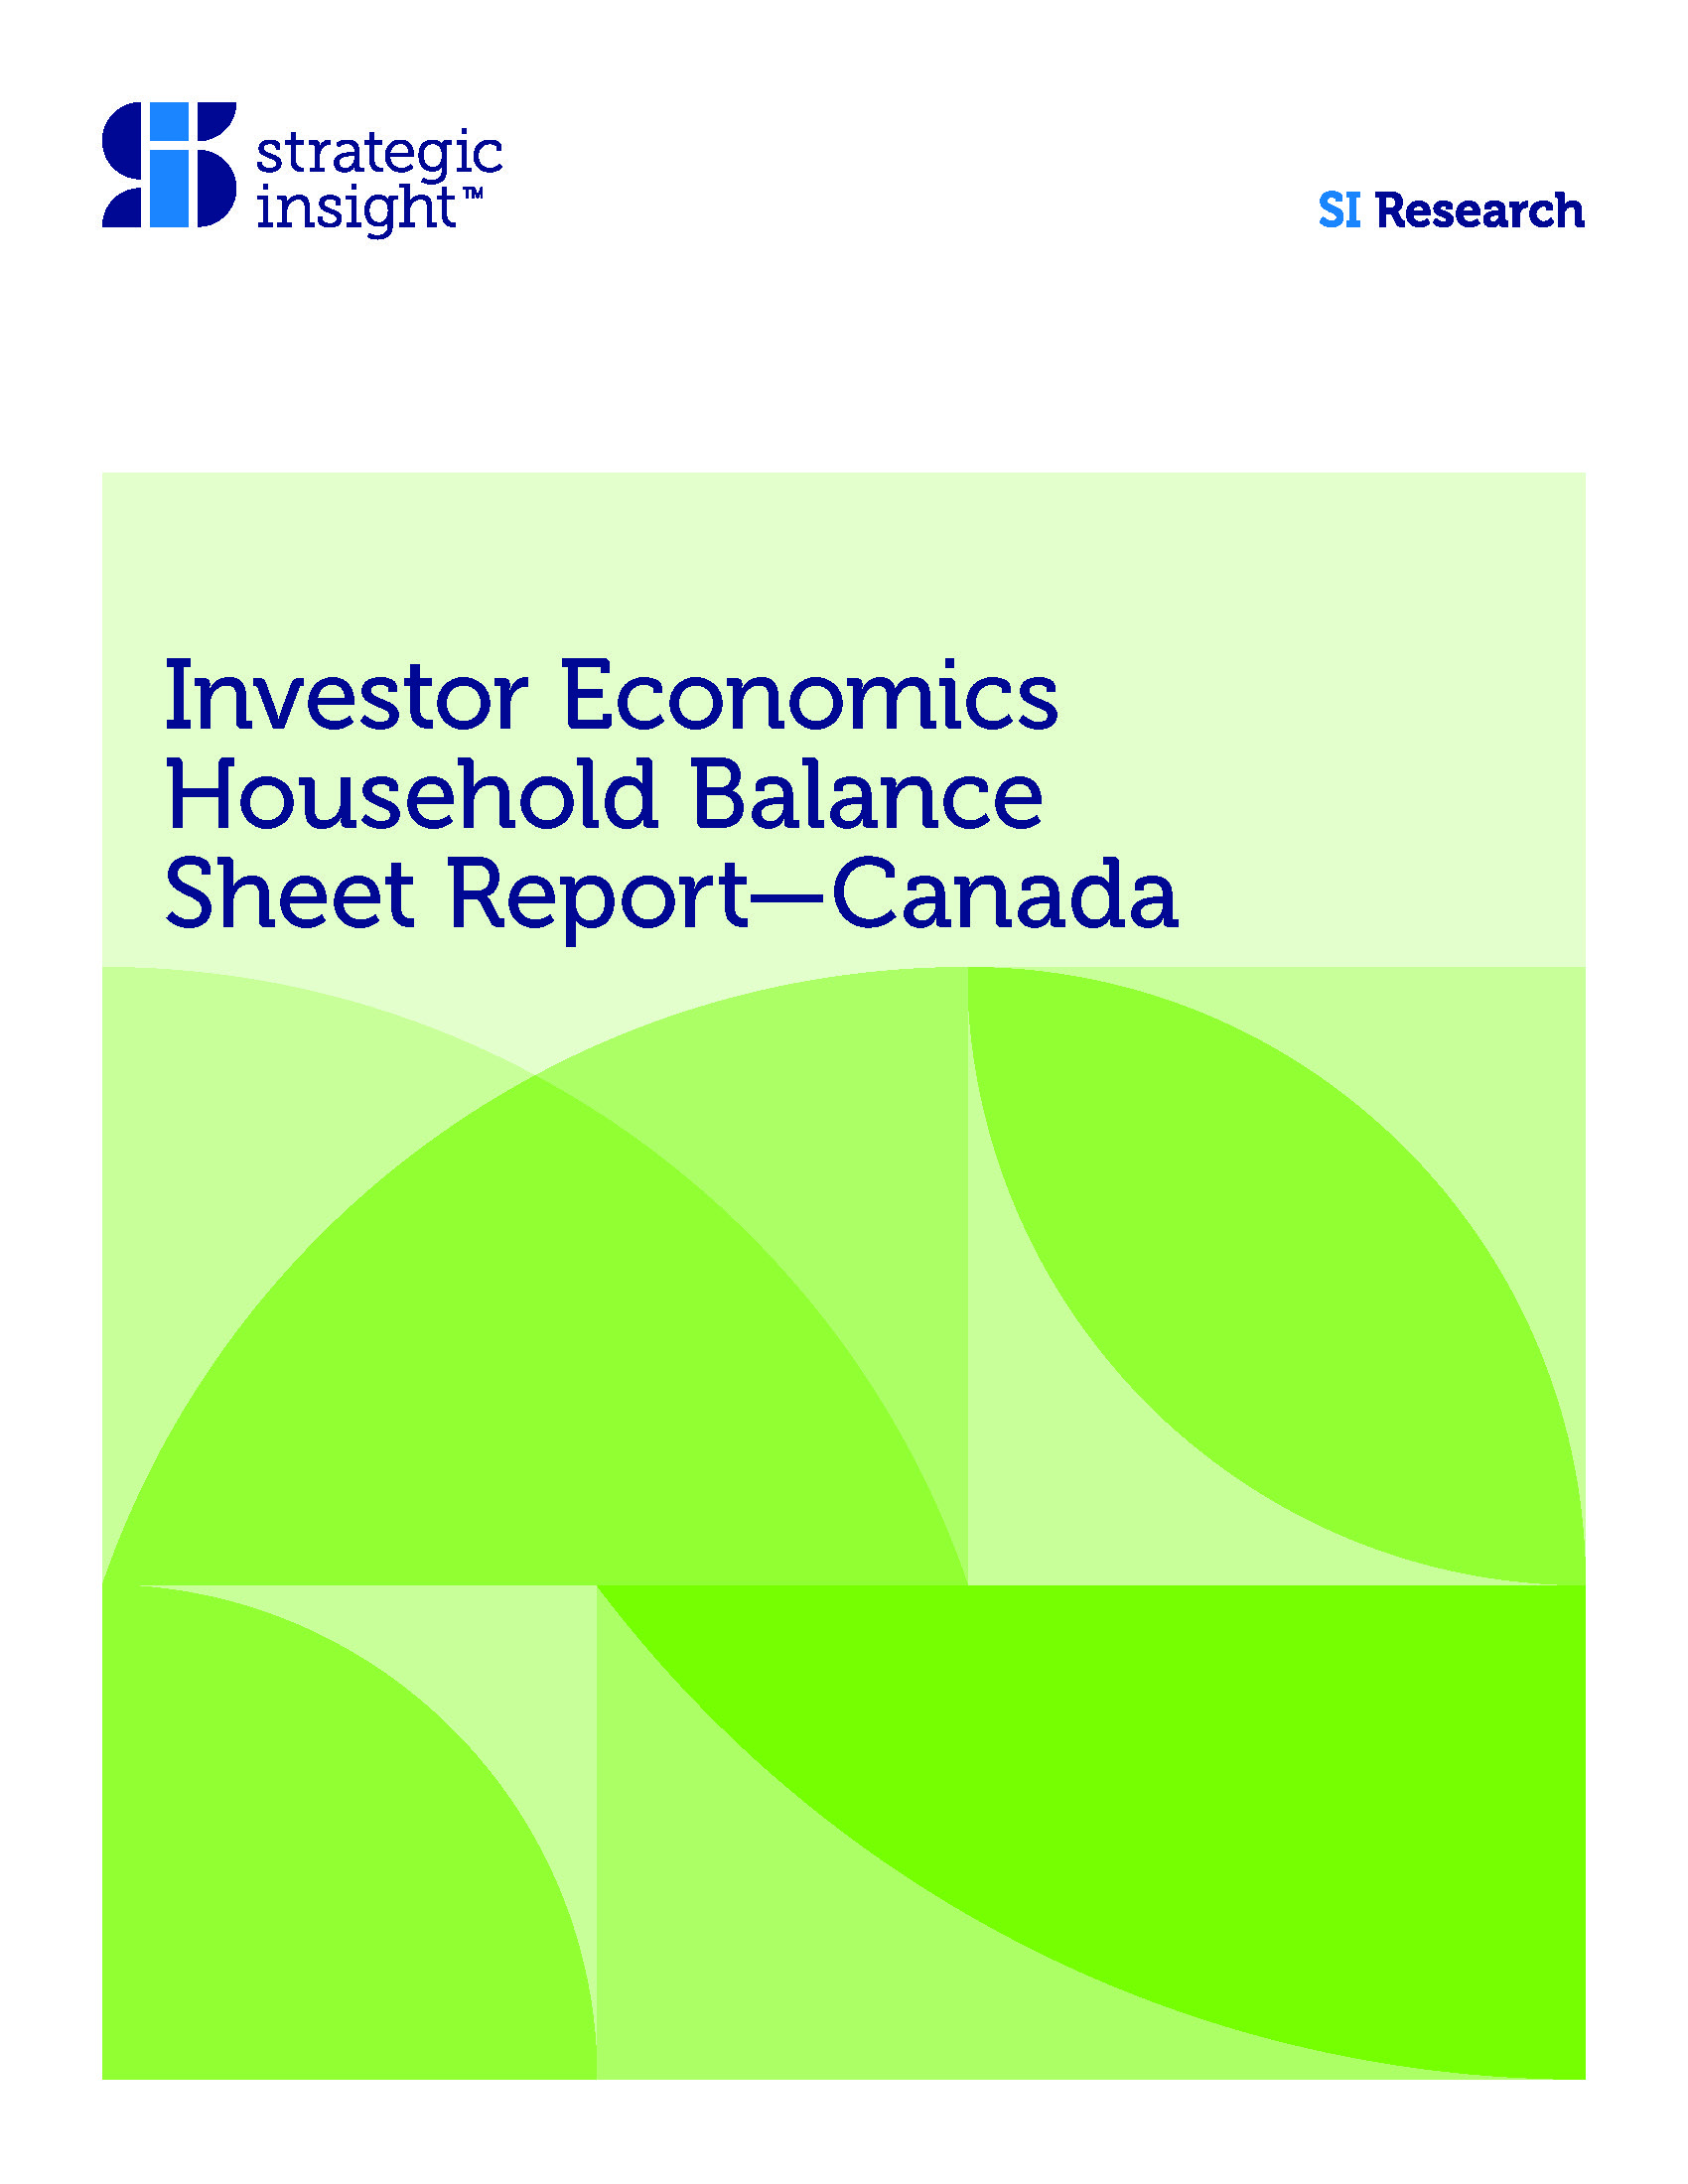 Household Balance Sheet 2018 Update and Rebased Forecast